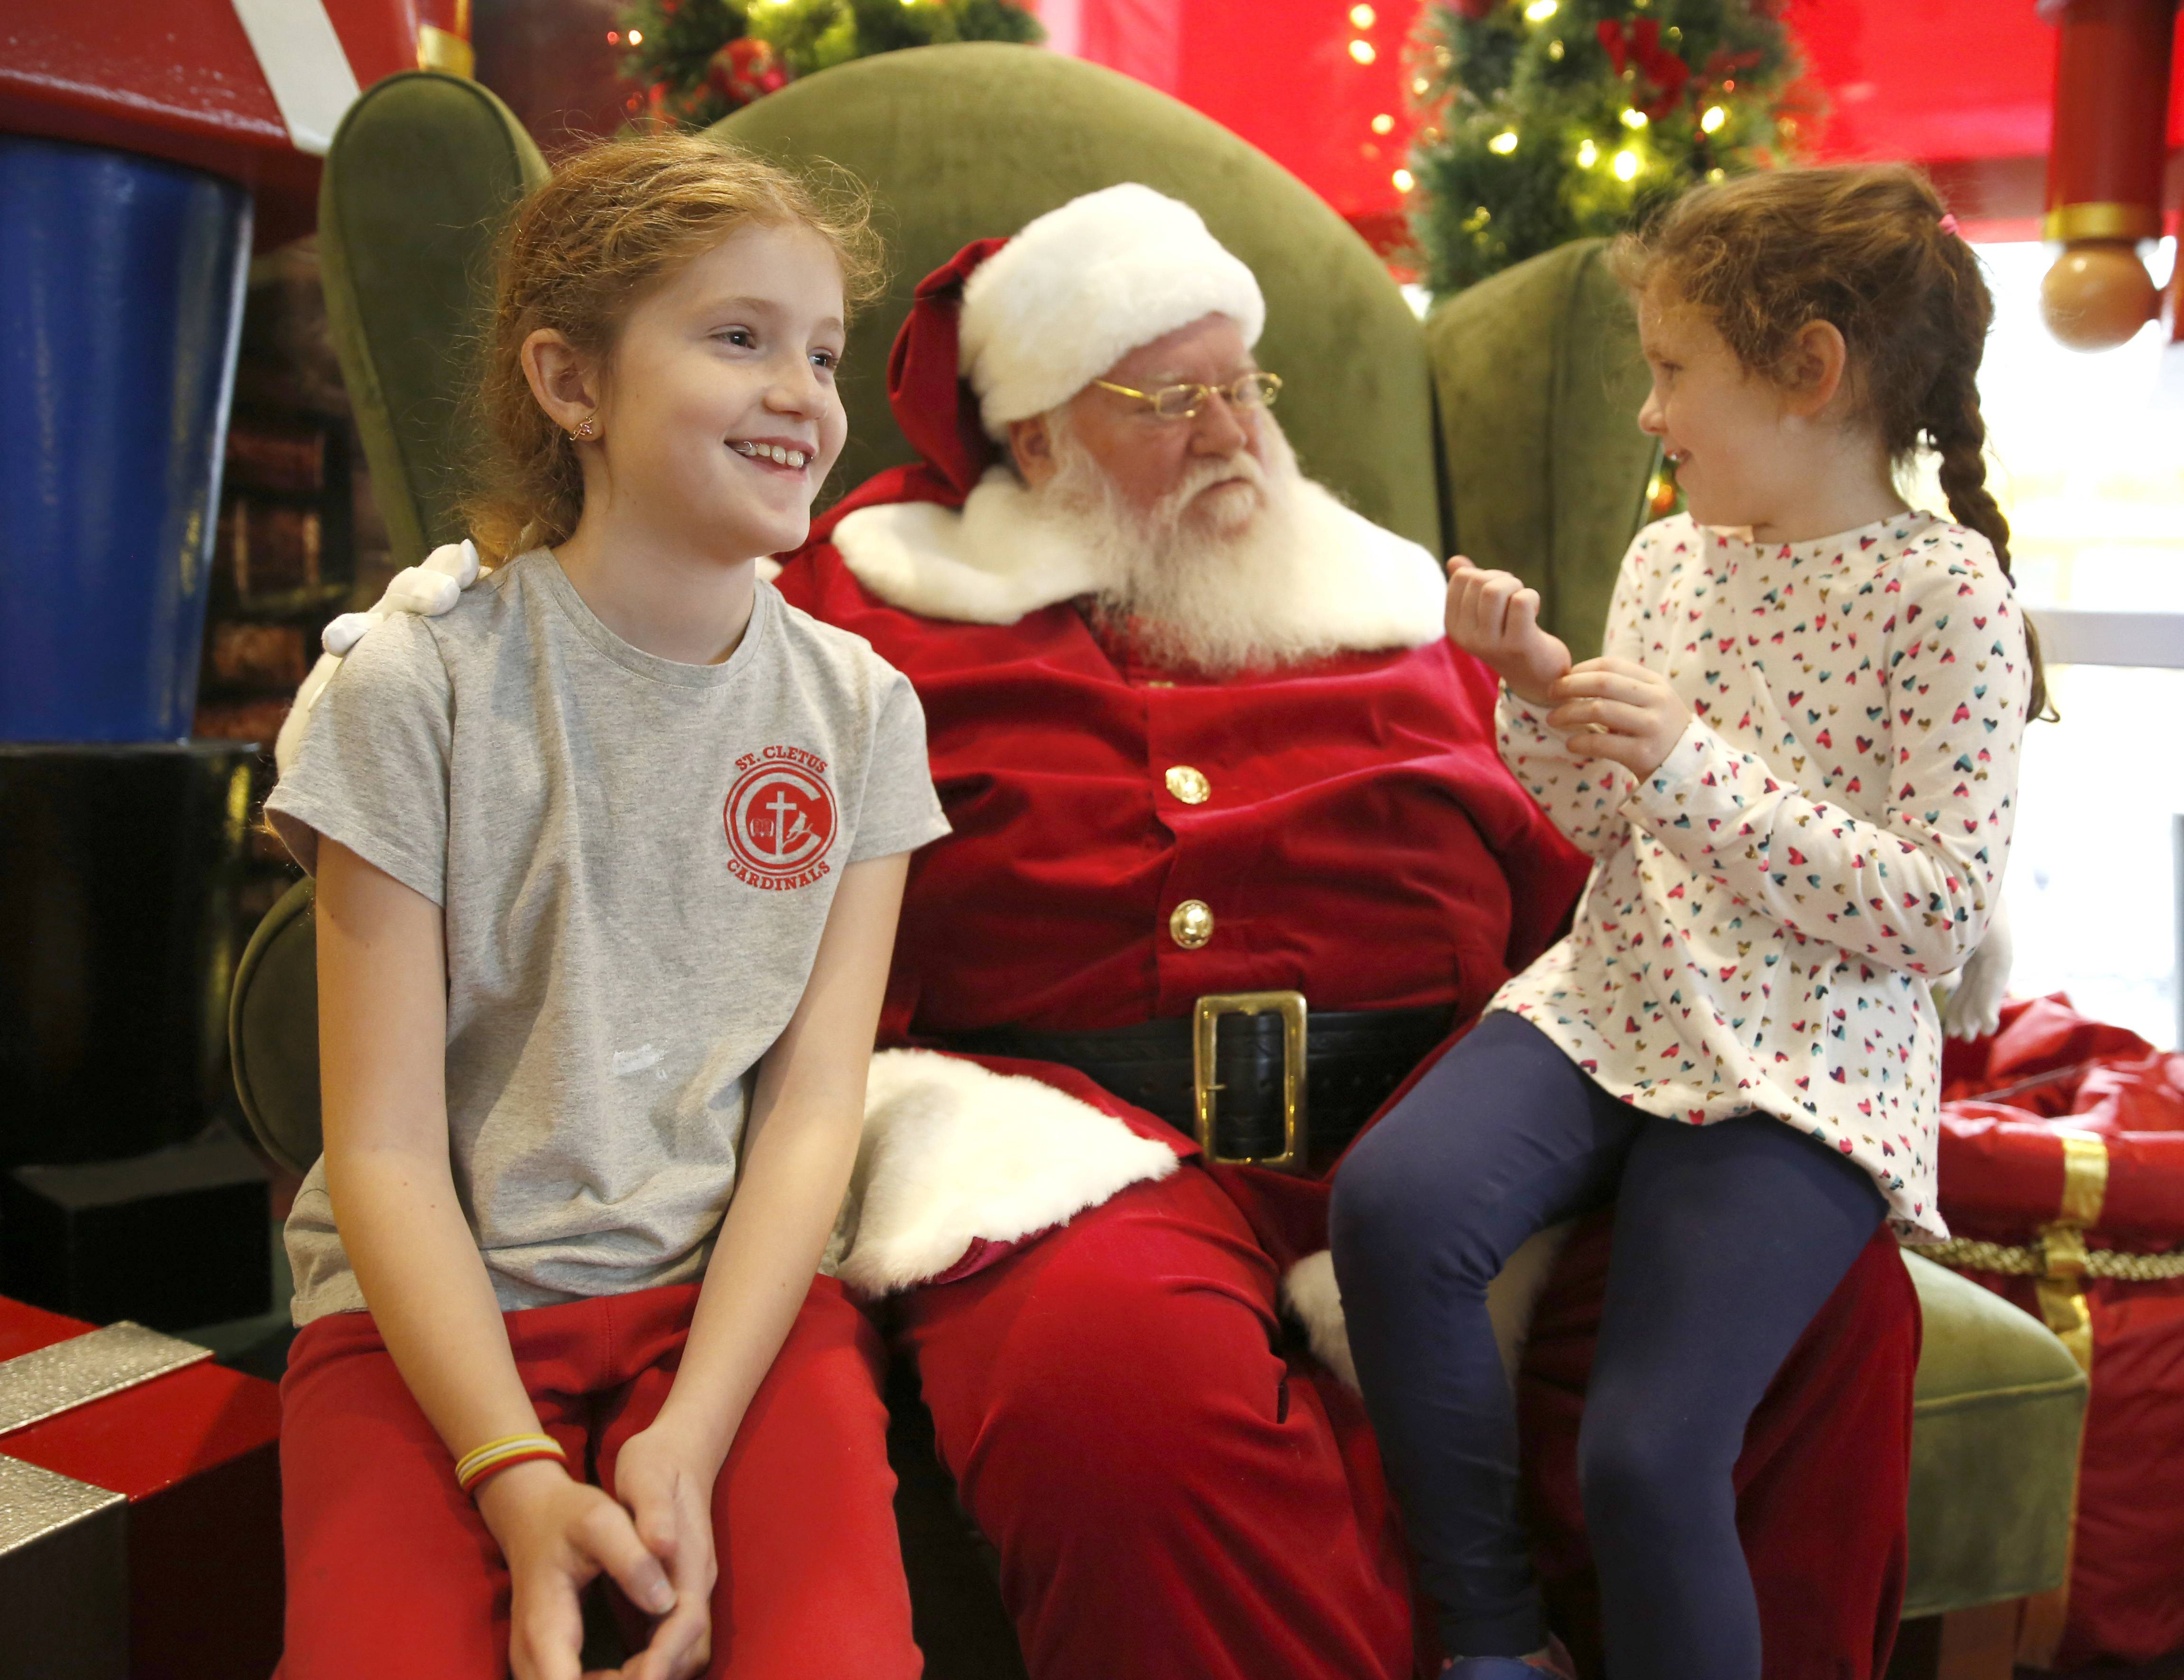 Lucy Ferron, 9, and Roxanne Ferron, 6, of Hickory Hills, visit Santa at Oakbrook Center's glass pavilion.